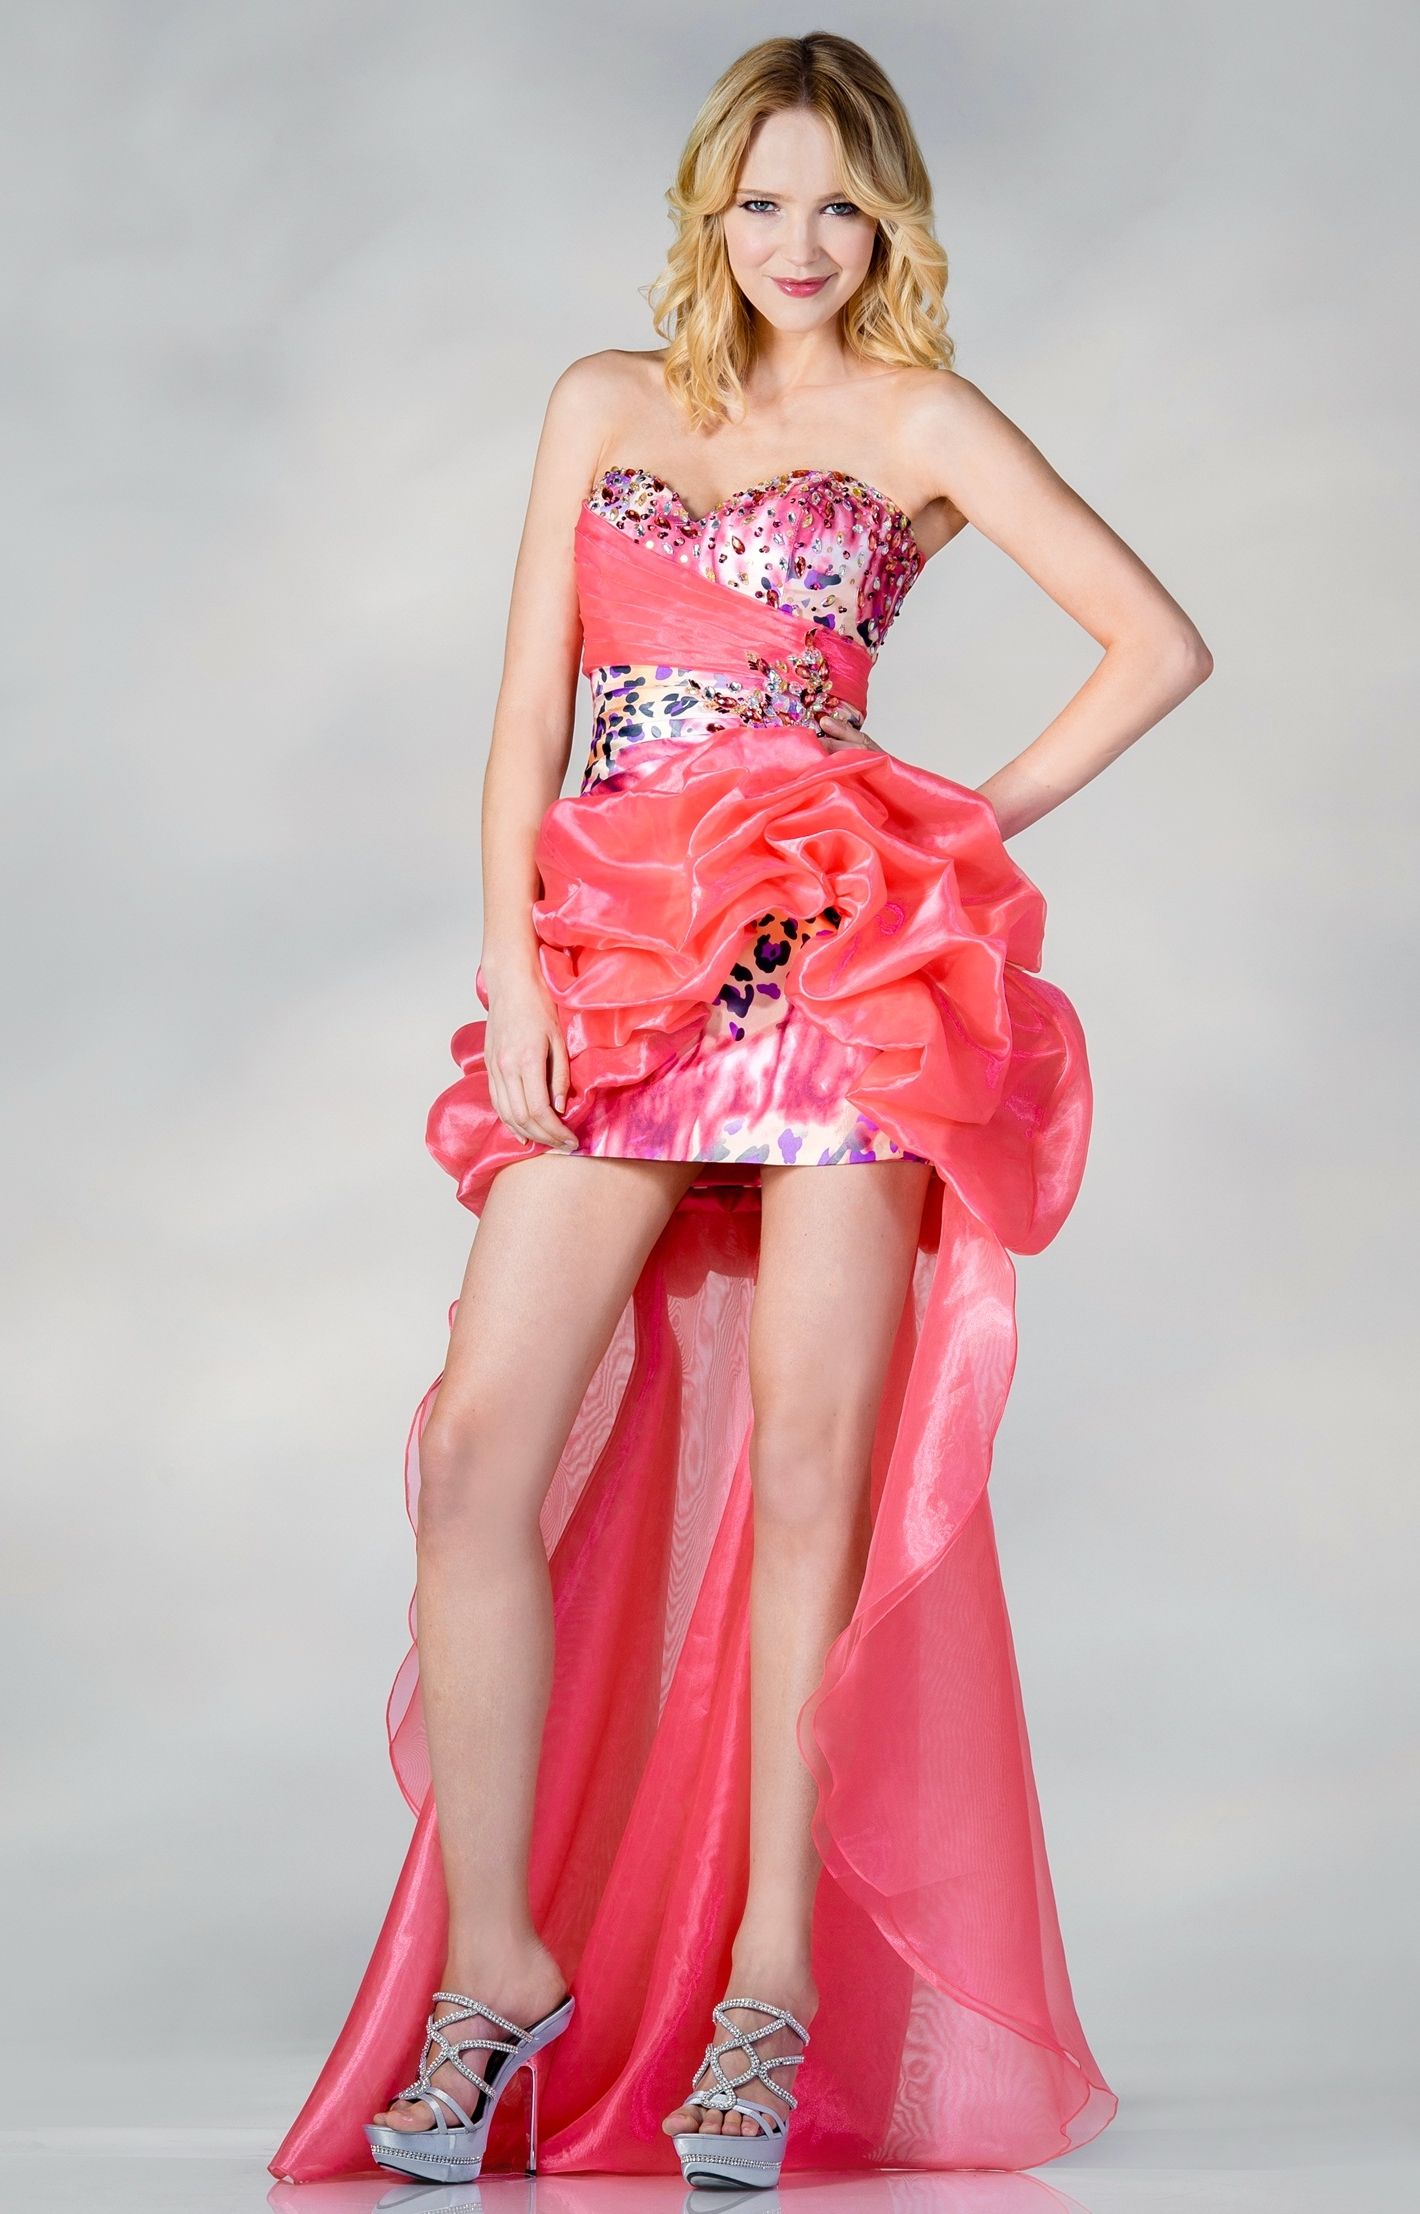 This is a strapless mini dress with organza hilo overlay